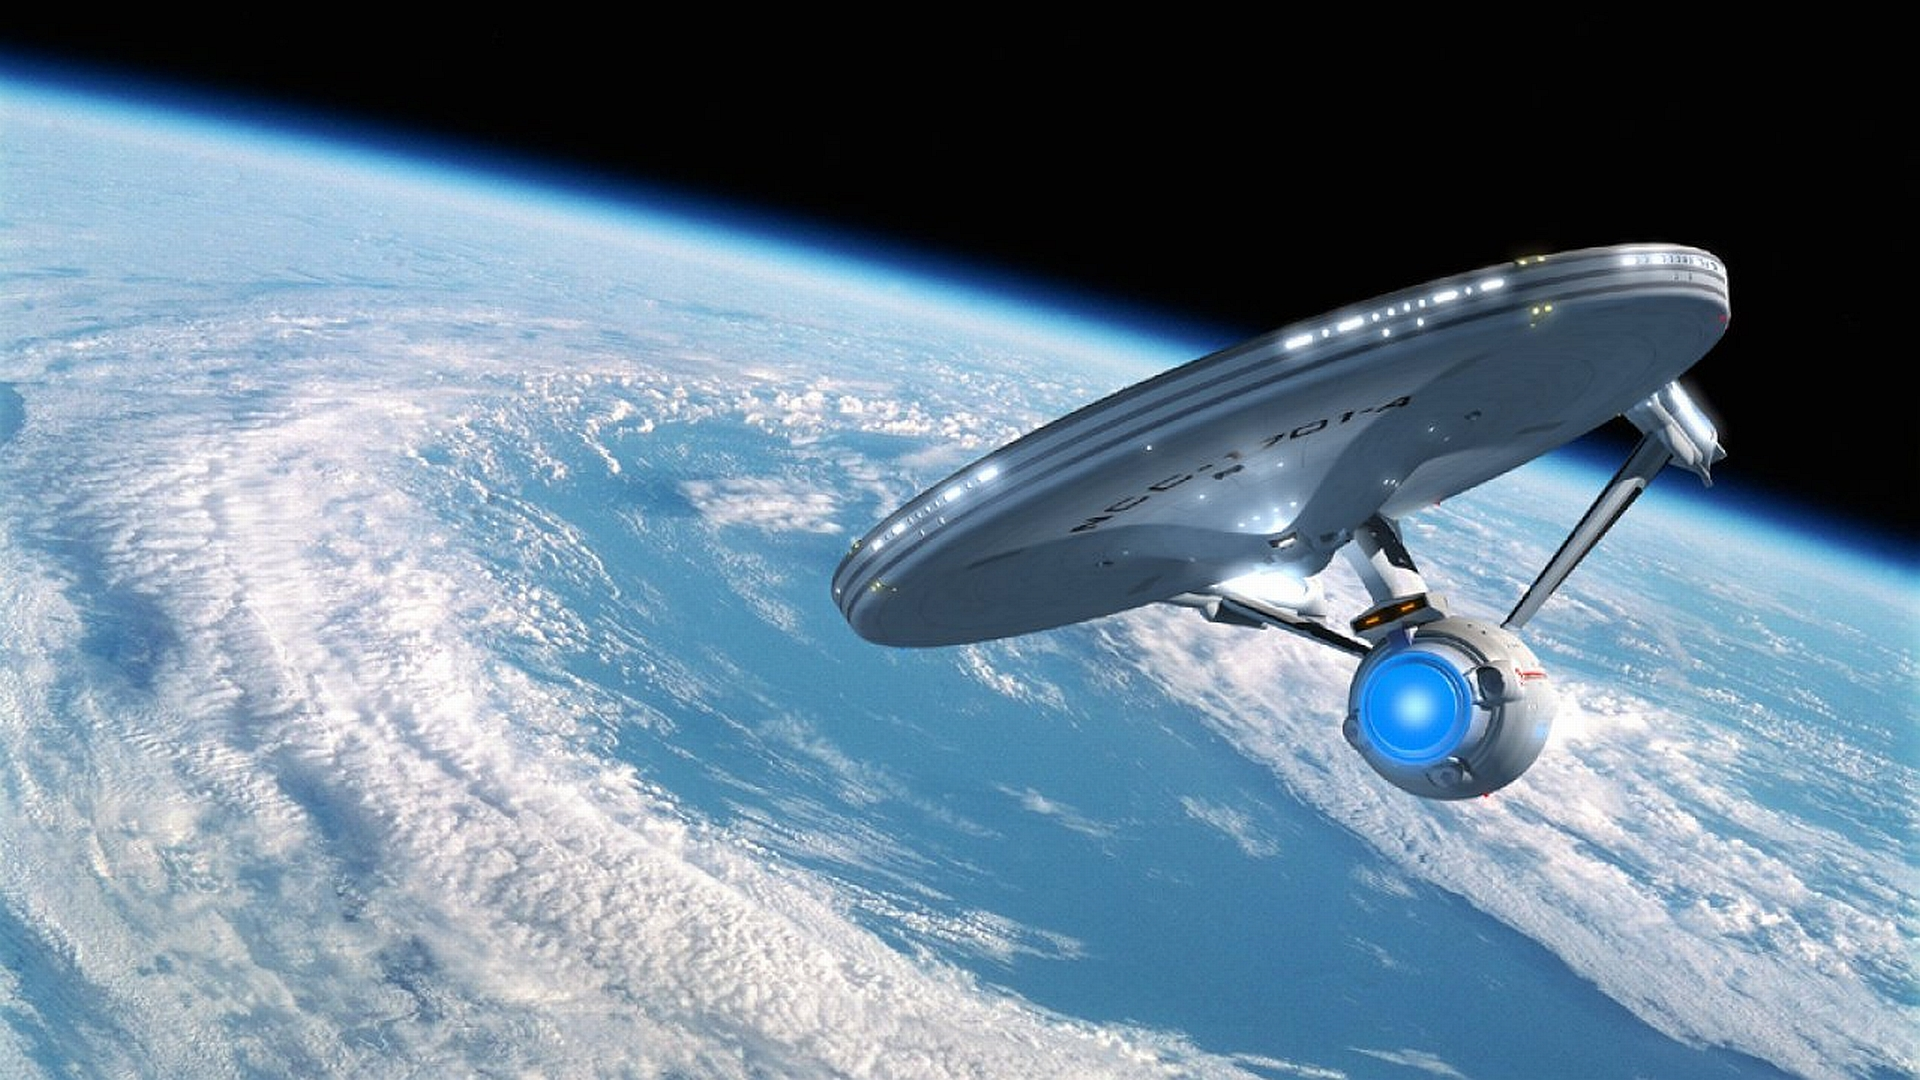 Sci Fi Star Trek Wallpaper Desktop ImageBankbiz 1920x1080